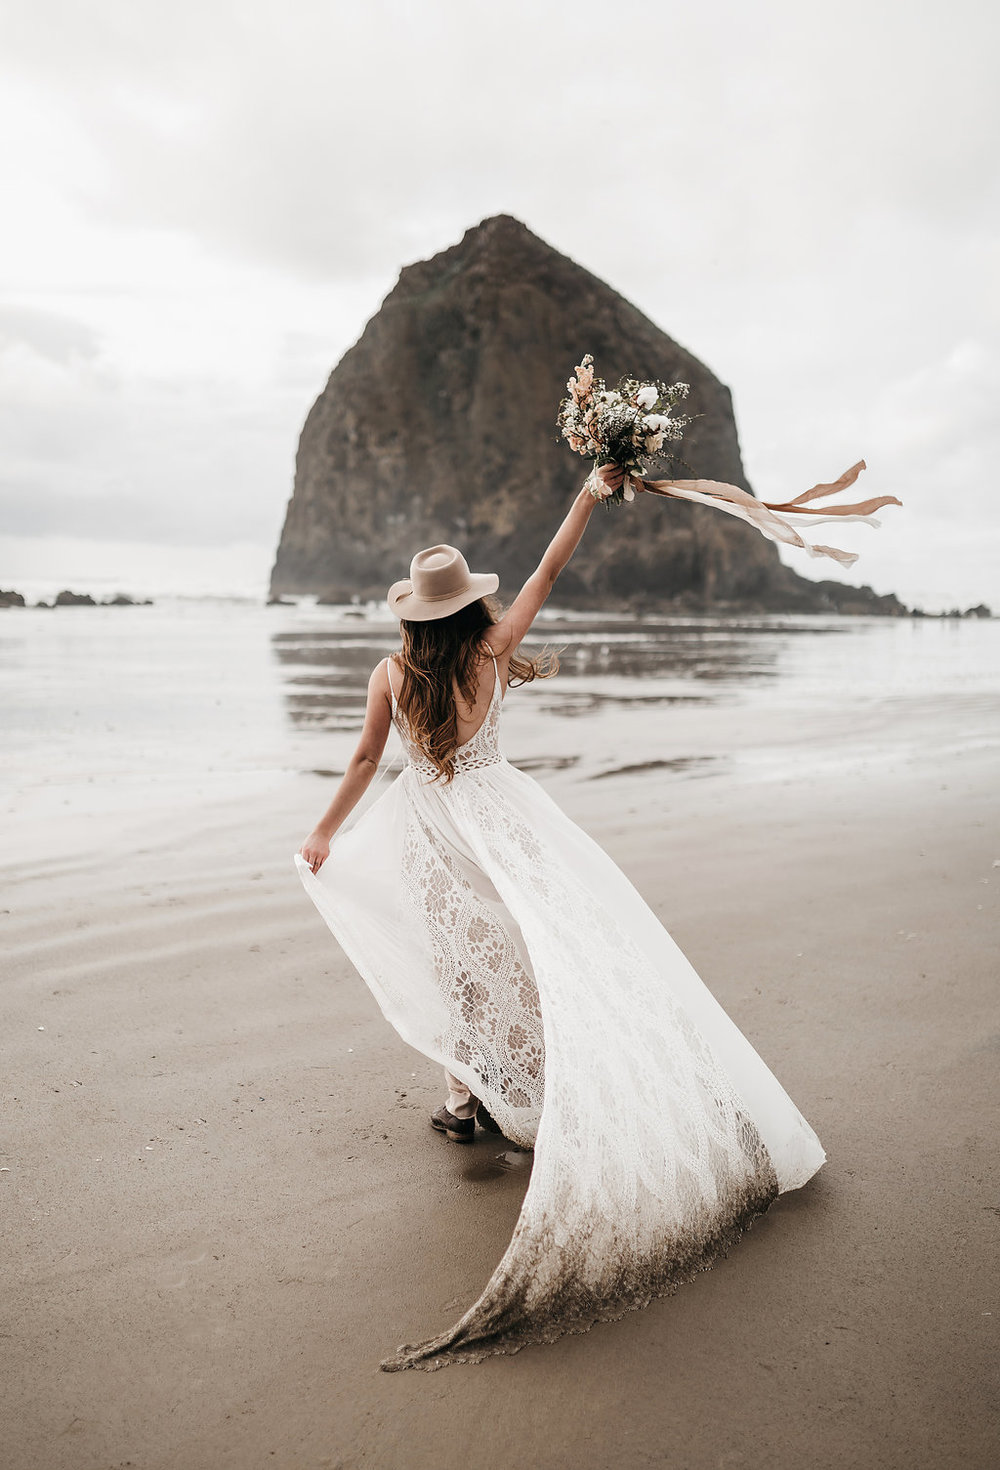 2018_April12-canon-beach-bridals-2-edited.jpg